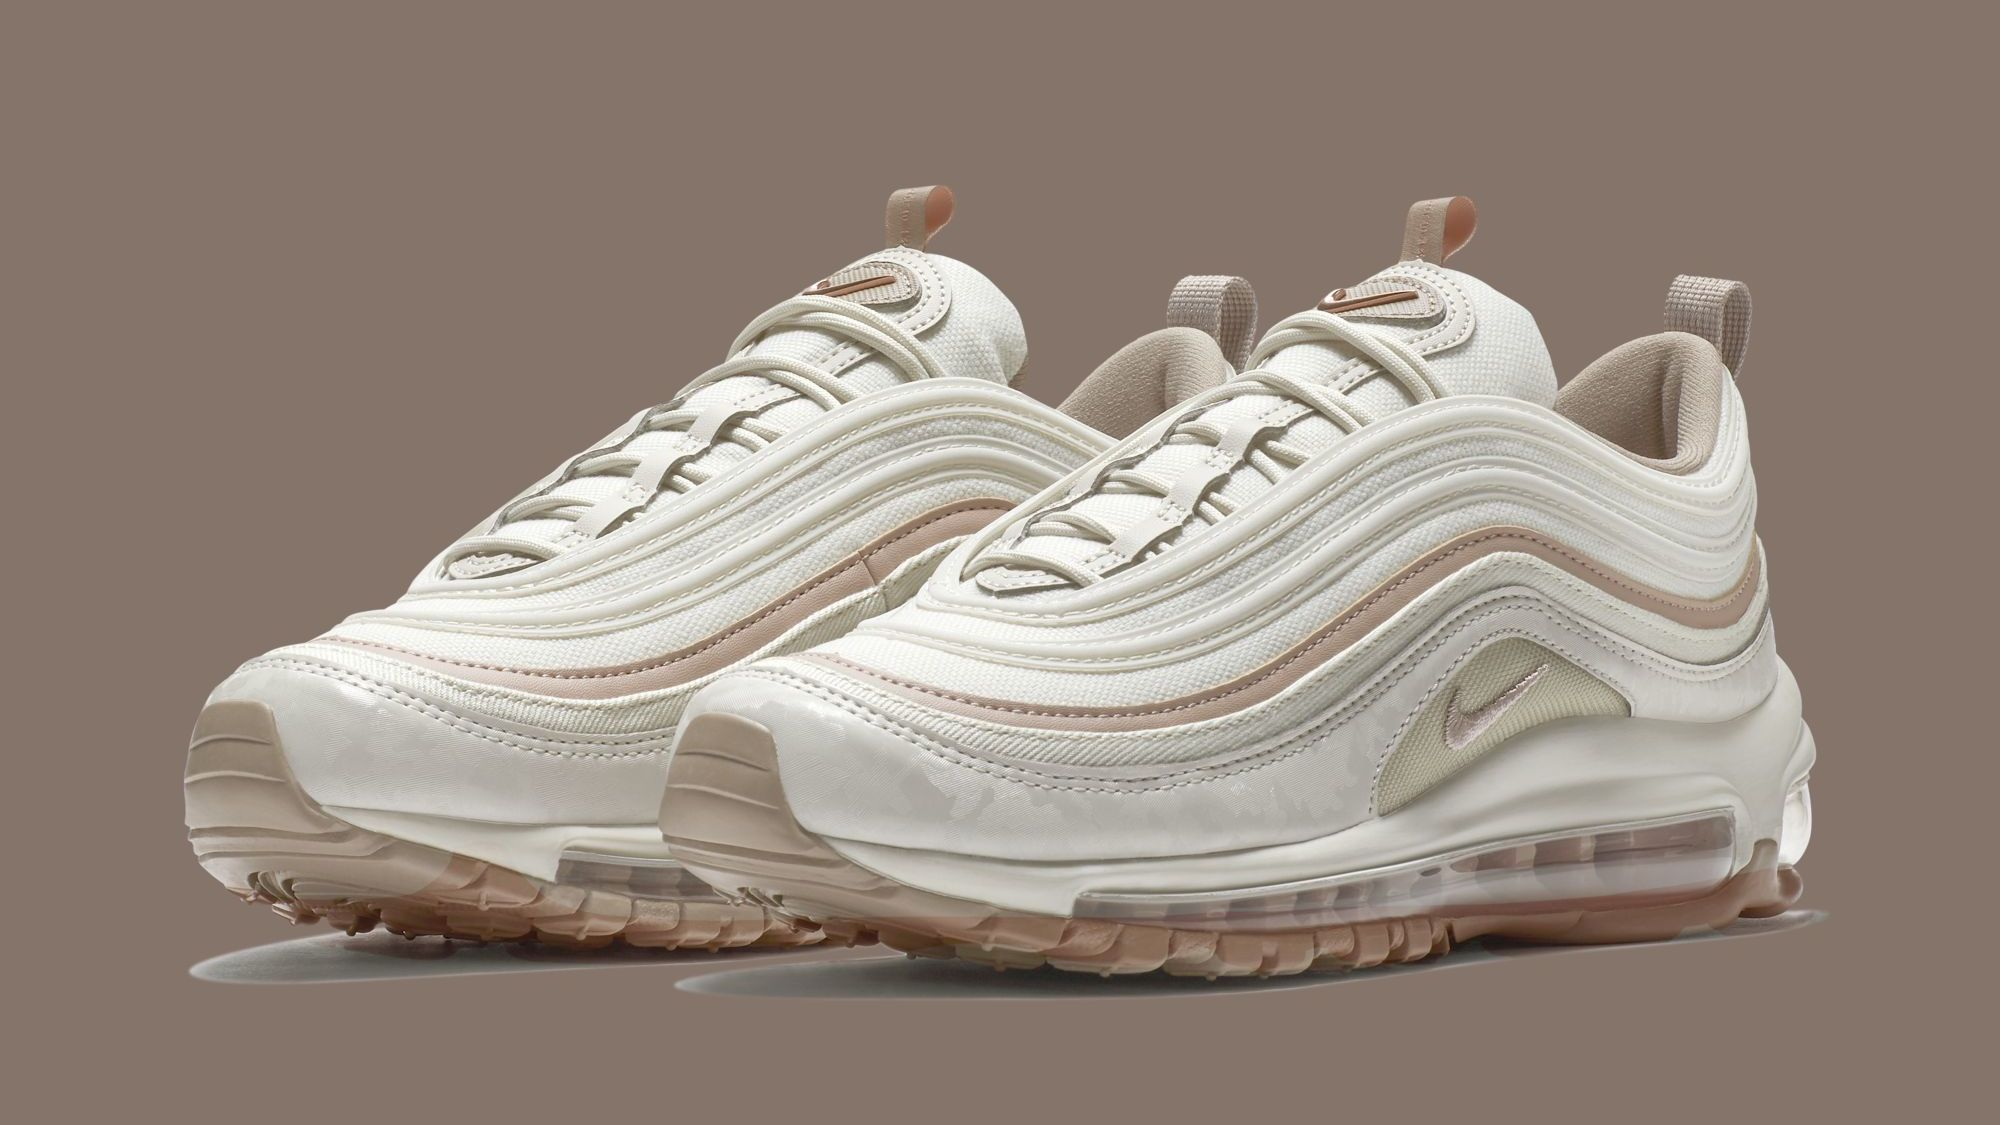 Nike Wmns Air Max 97 Premium Light Bone Diffused Taupe Sepia Stone 917646 004 Release Date Sole Collector